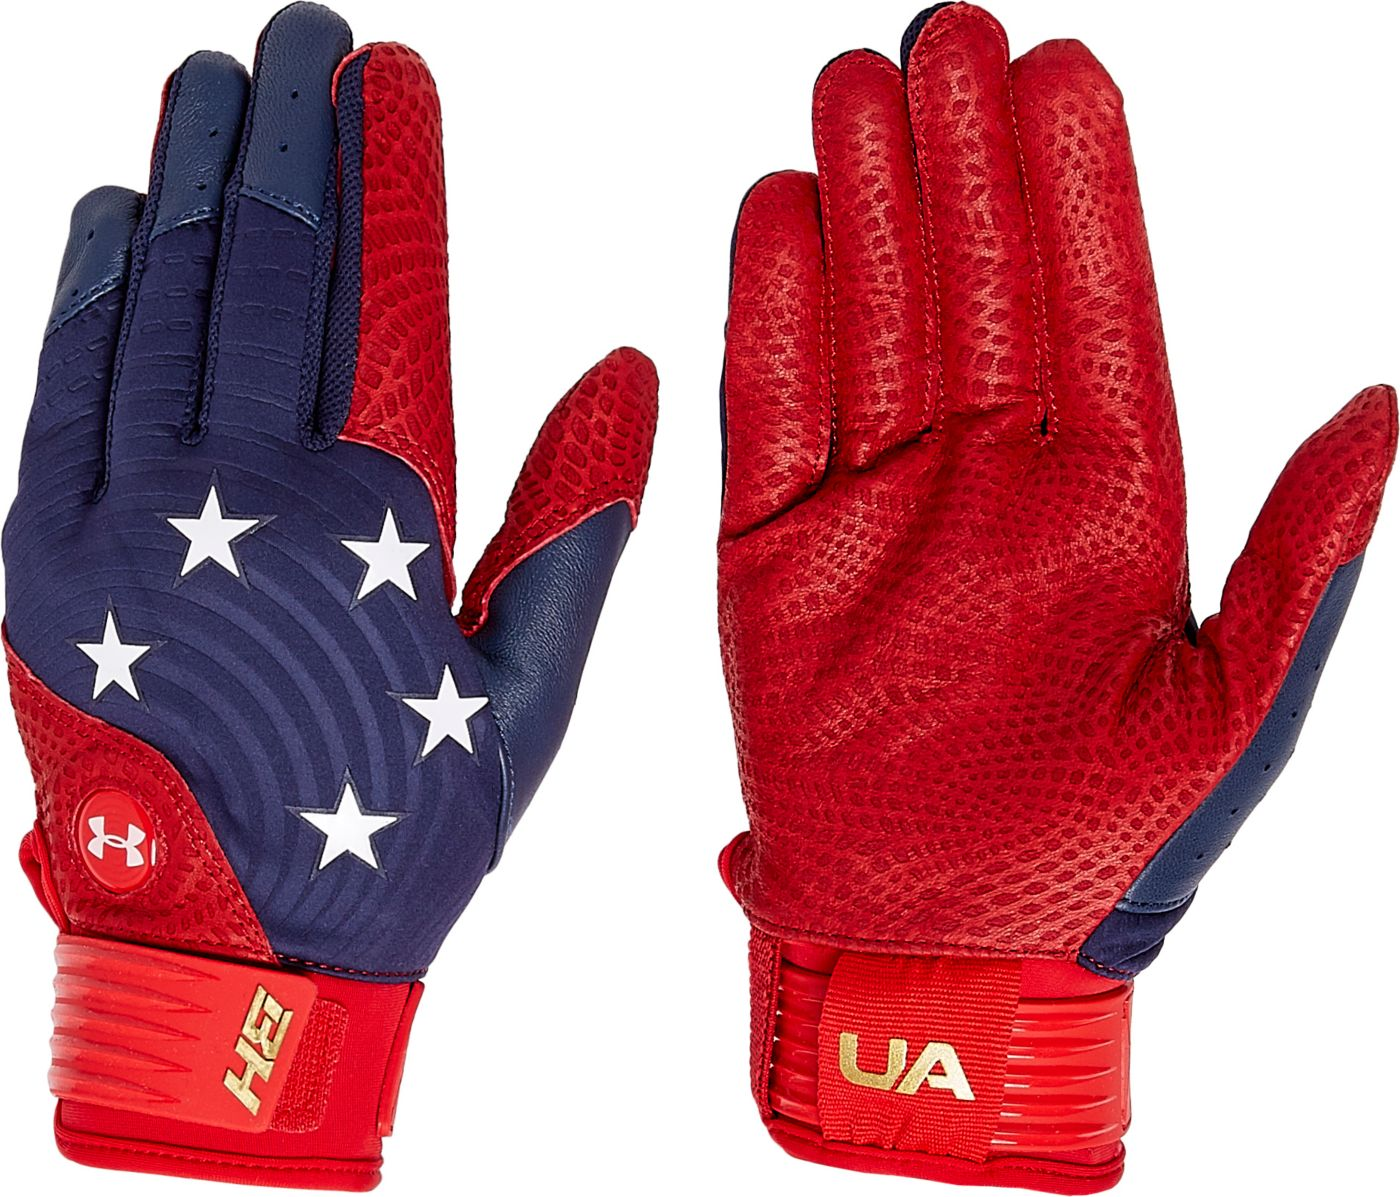 Under Armour Harper Pro Limited Edition Batting Gloves 2020